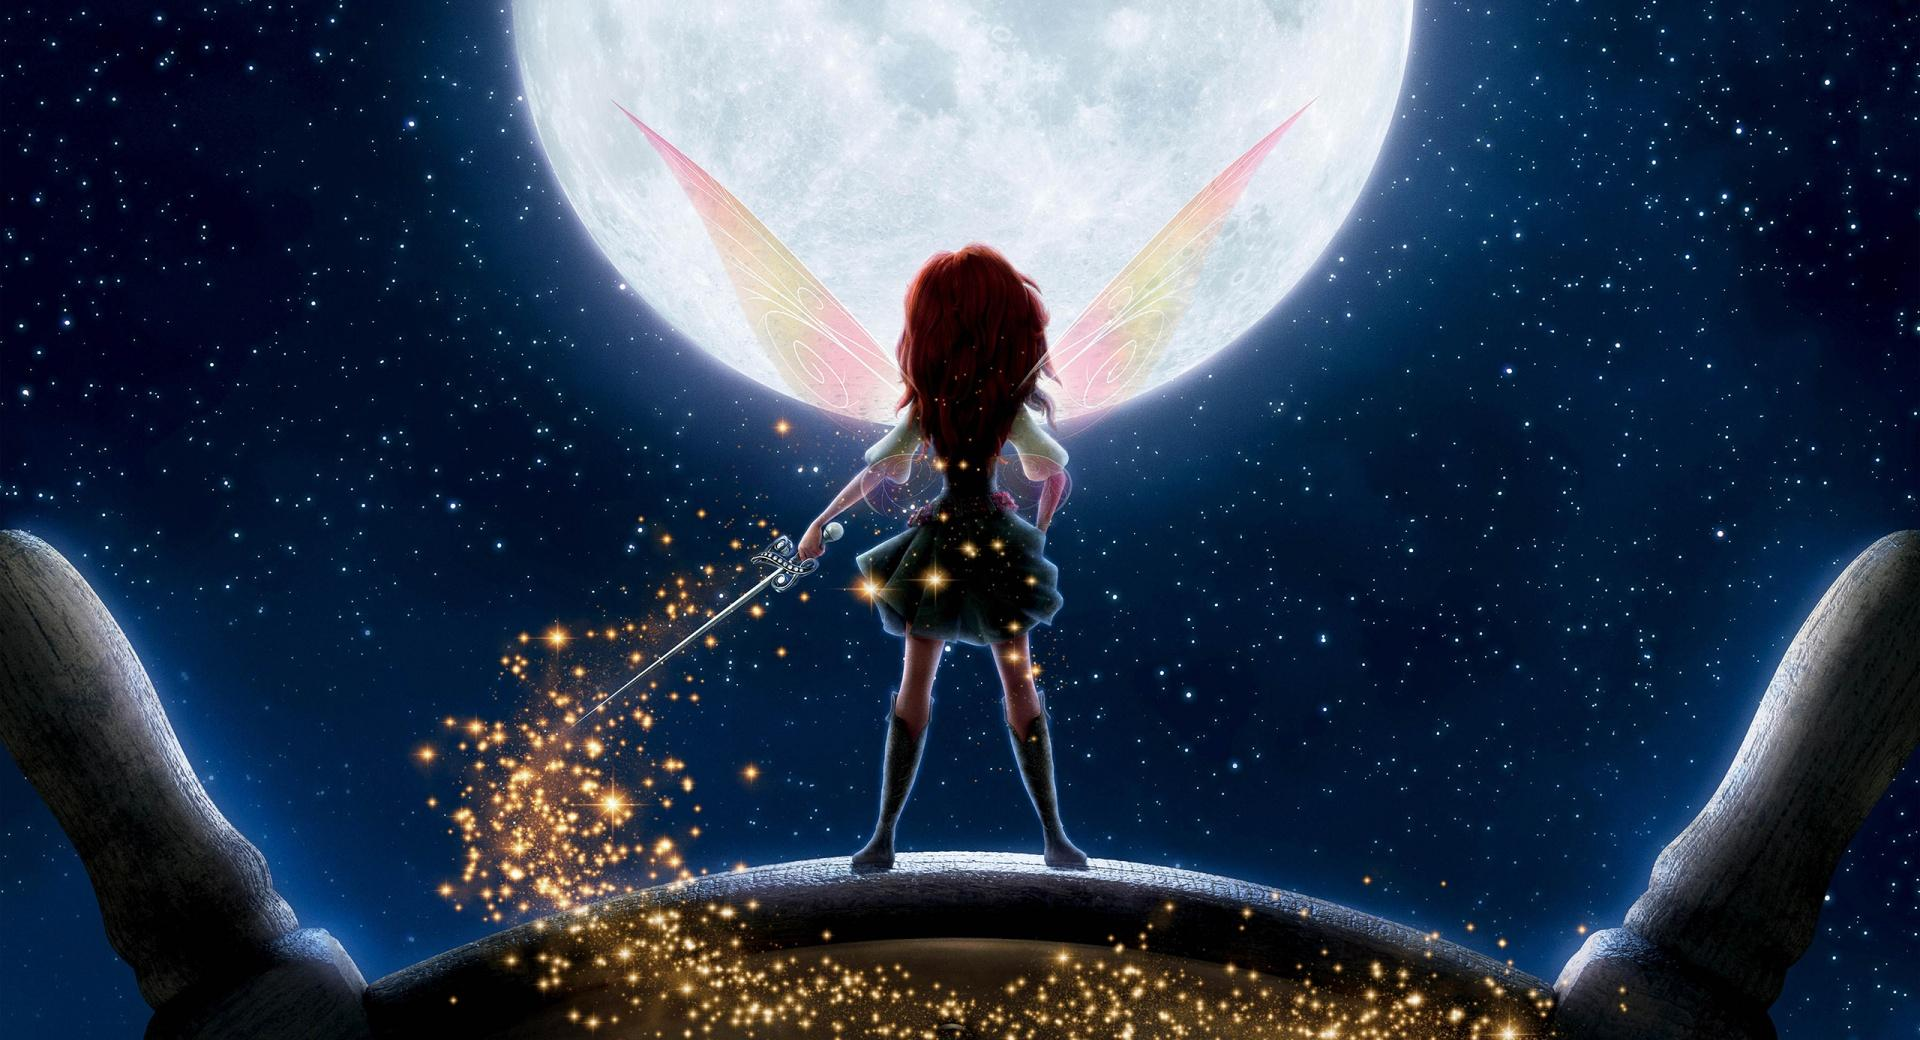 The Pirate Fairy 2014 Movie wallpapers HD quality